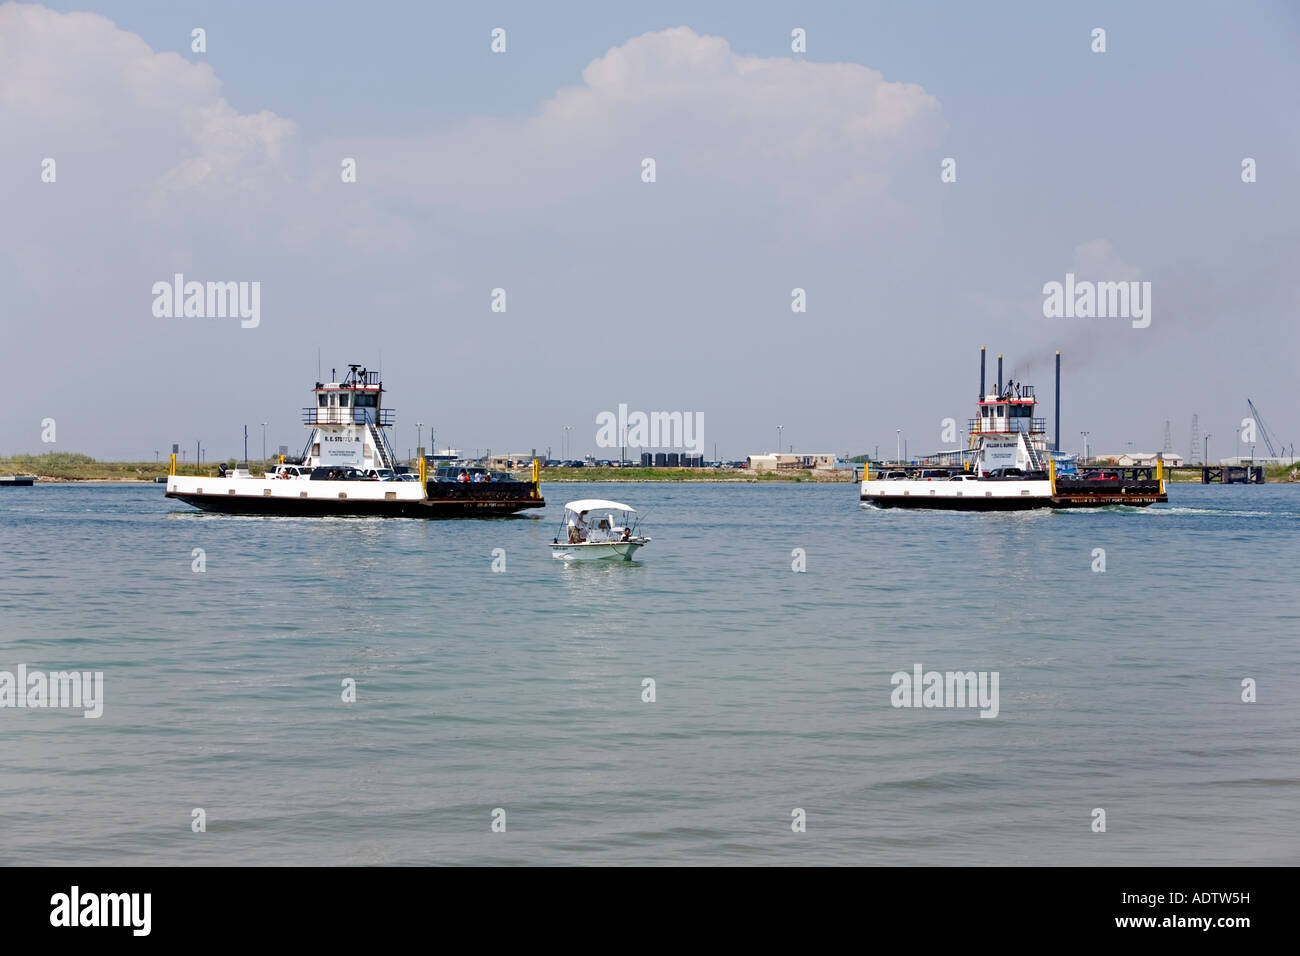 Ferries and a fishing boat Port Aransas TX. Car crossing over bay islands. - Stock Image